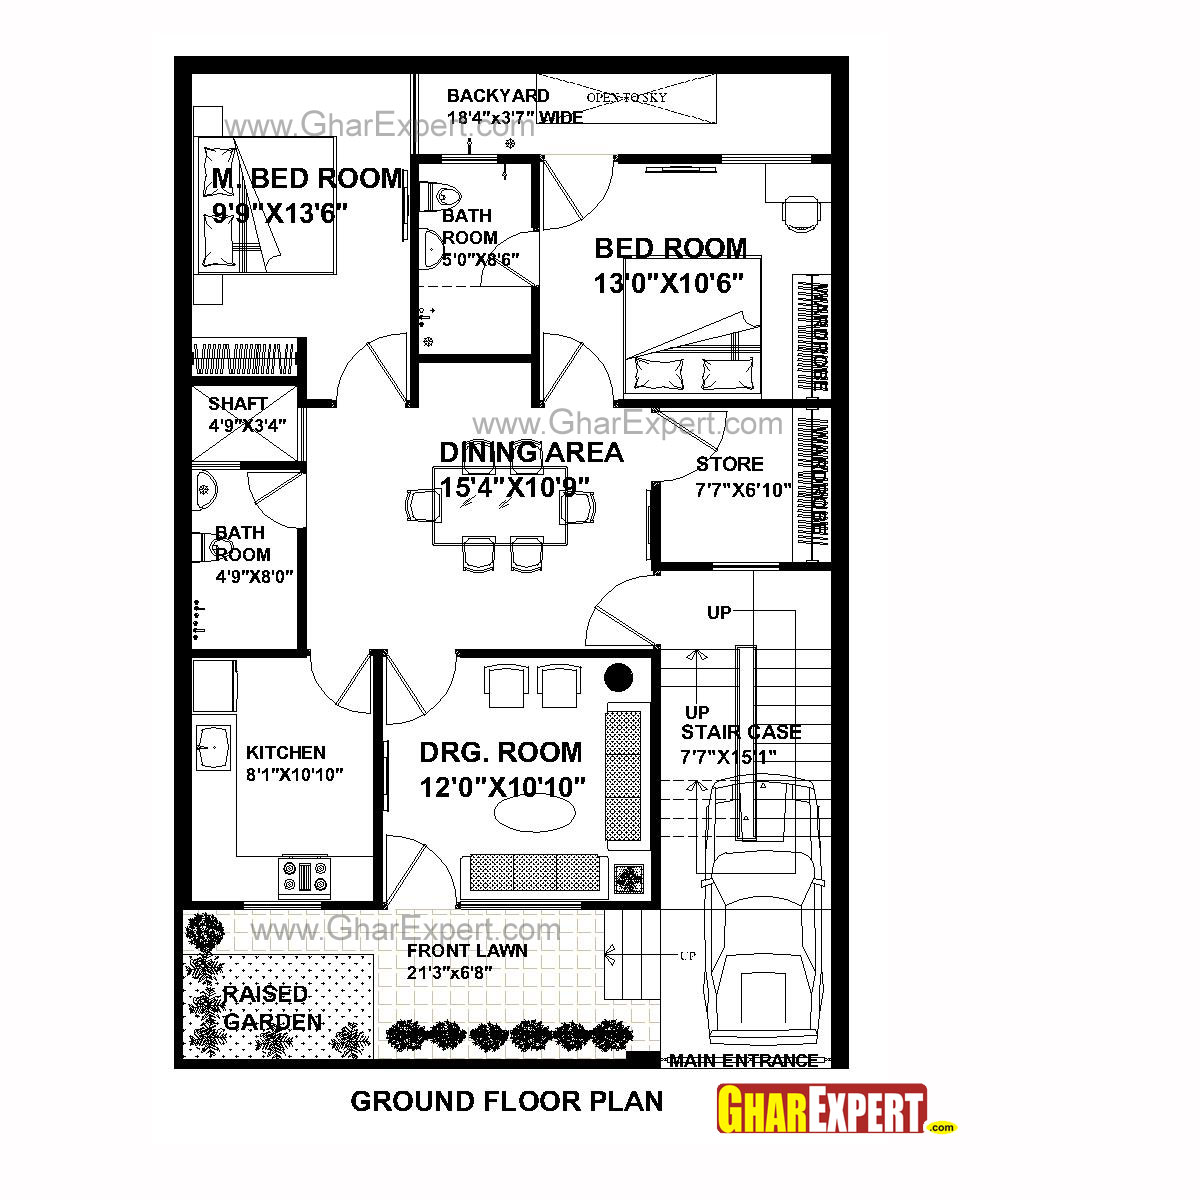 House plan for 30 feet by 45 feet plot plot size 150 30 by 30 house plans